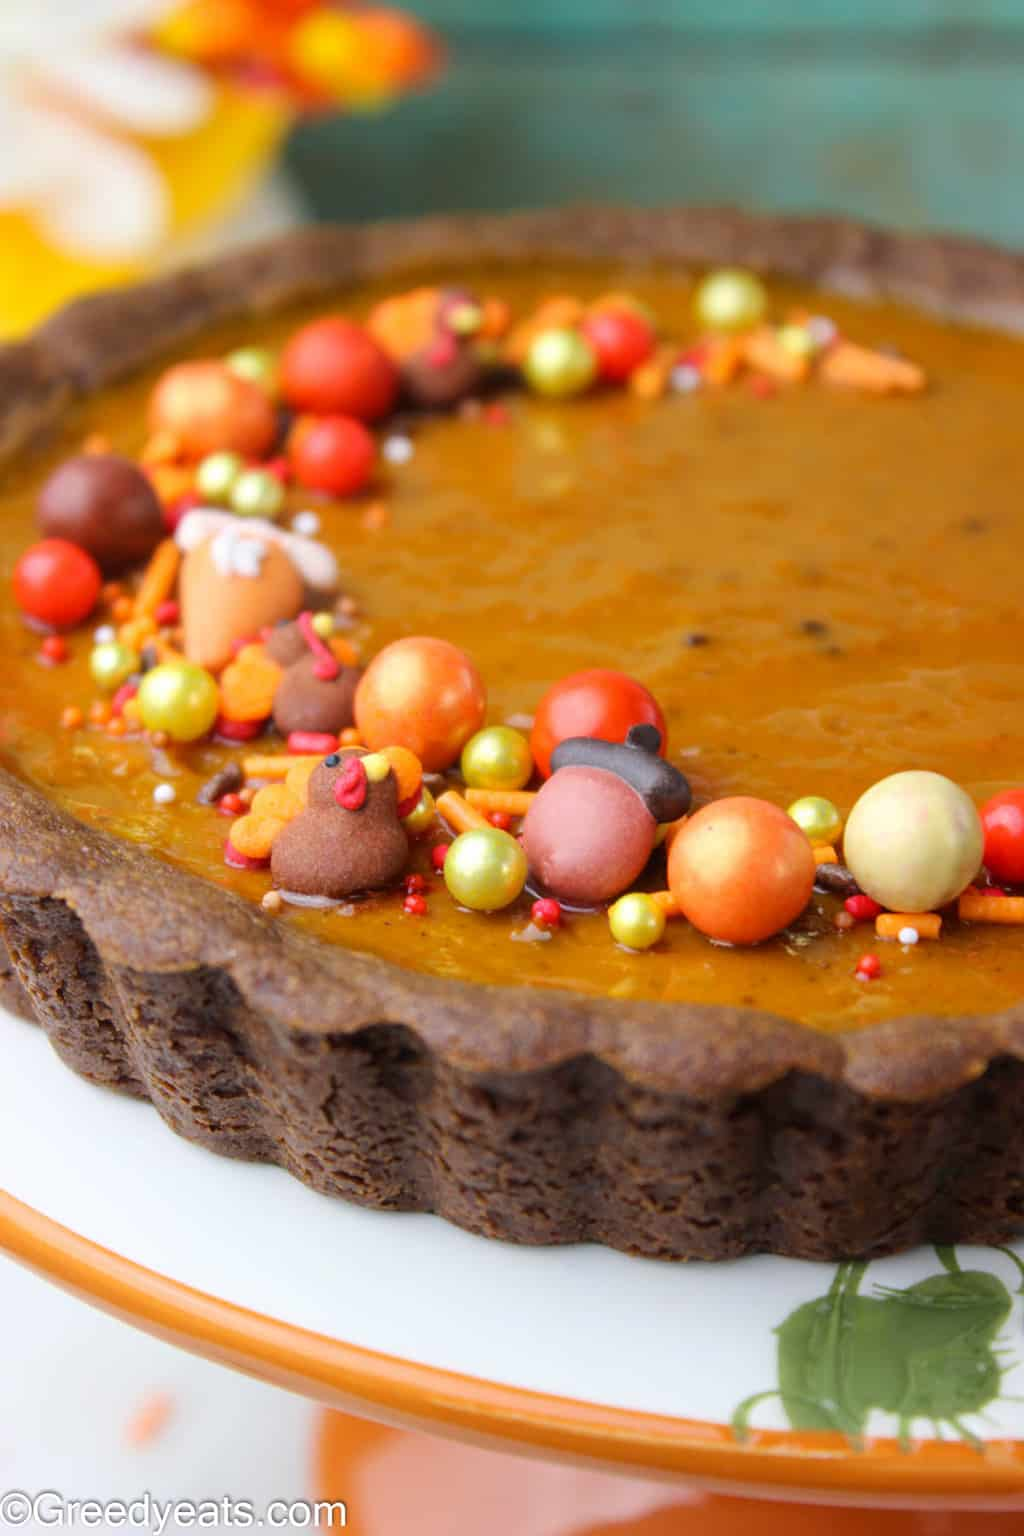 You will adore this Easy Pumpkin Tart recipe with a spiced pumpkin filling that sits on my best gingerbread crust!